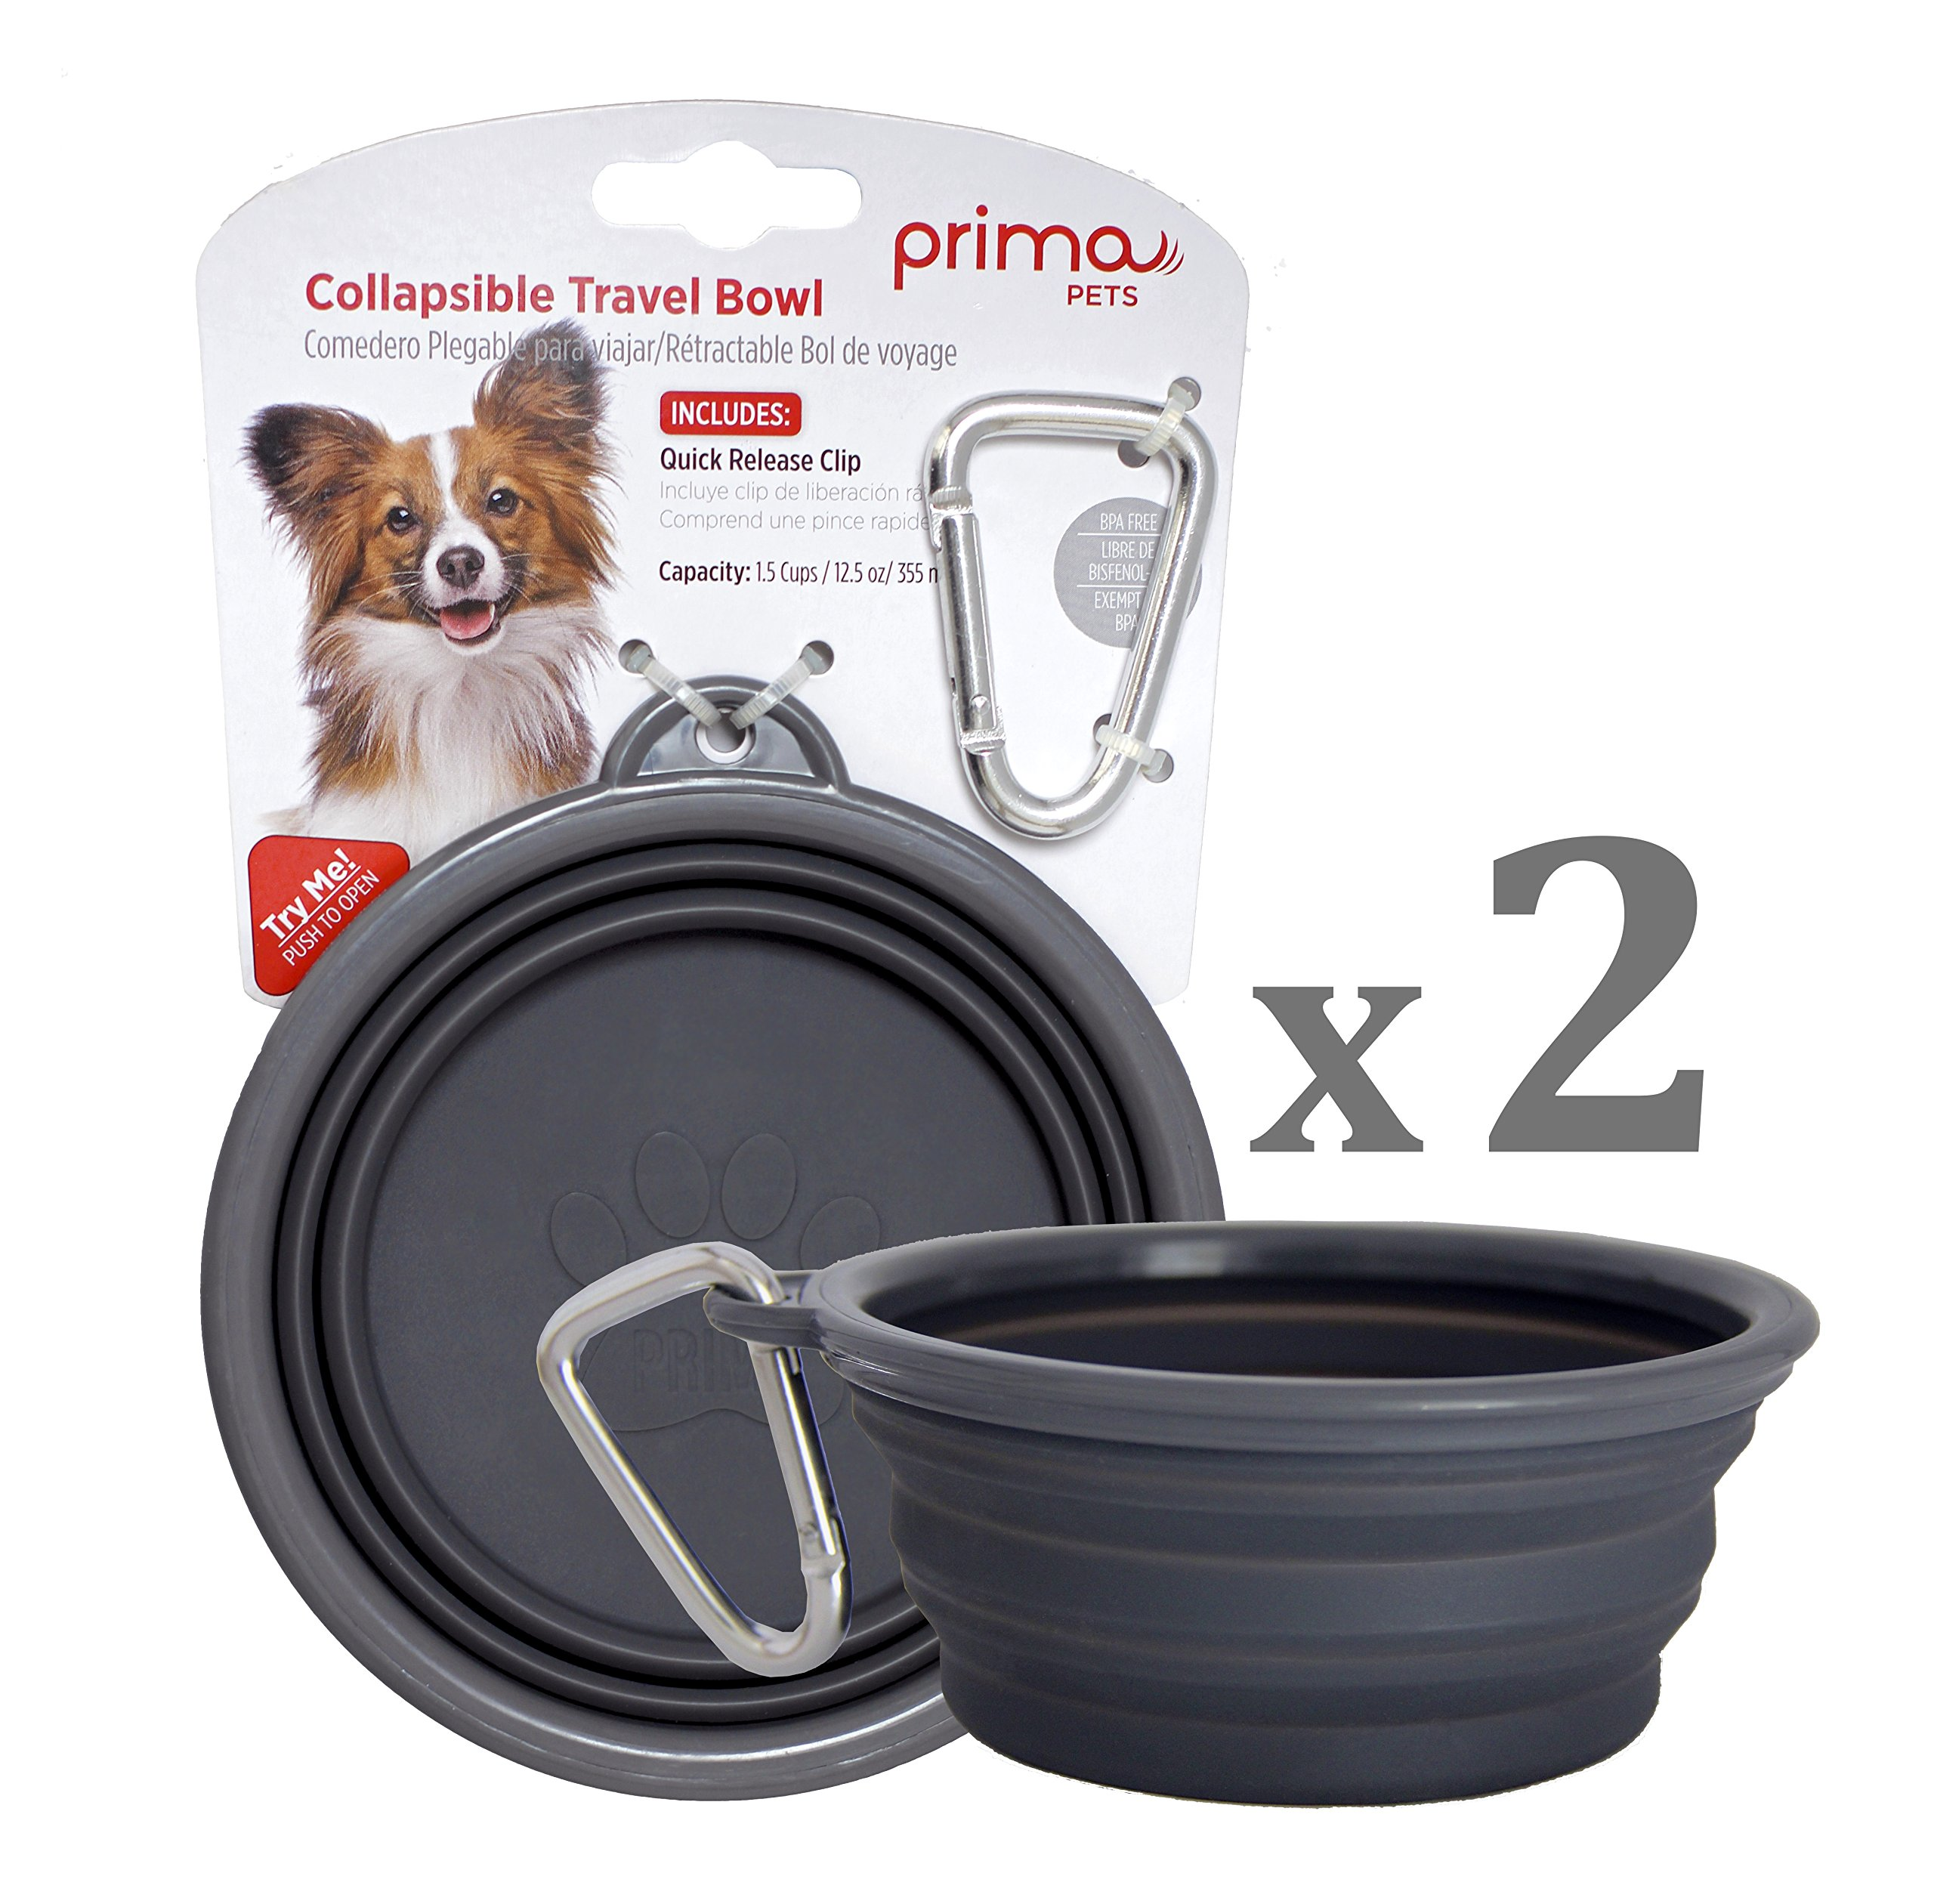 SALE: Prima Pet Collapsible Silicone Water Travel Bowl with Clip for Dog and Cat, Portable and Durable Pop-up Feeder for Convenient On-the-go Feeding – Size: SMALL (1.5 Cups) GREY –2 PACK